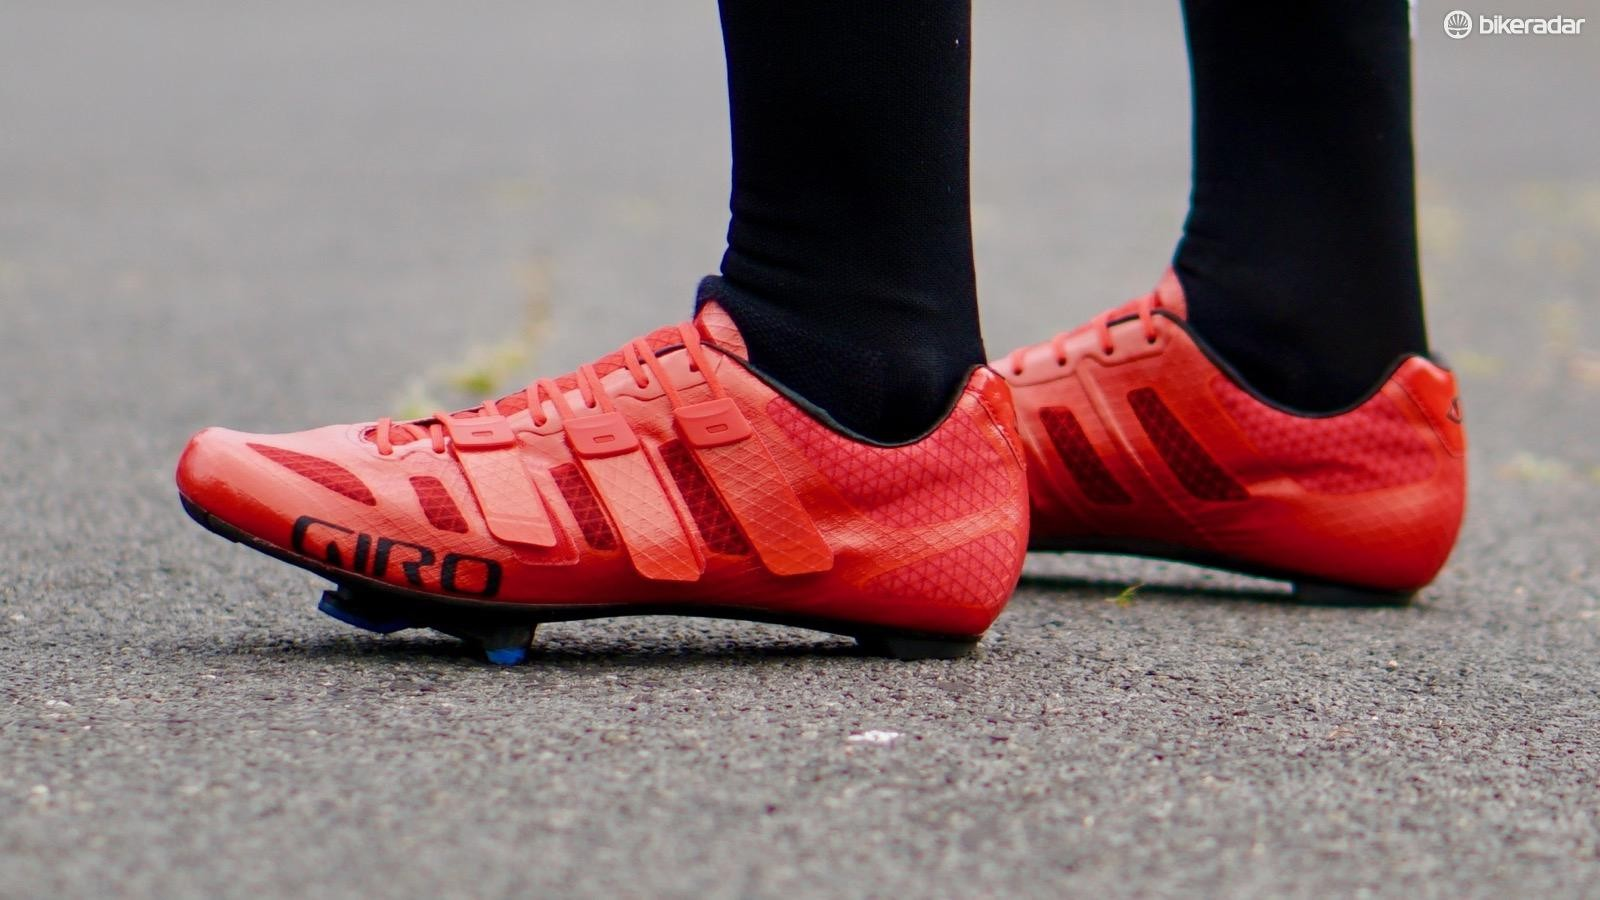 The new Giro Prolight Techlace is a minimalist shoe